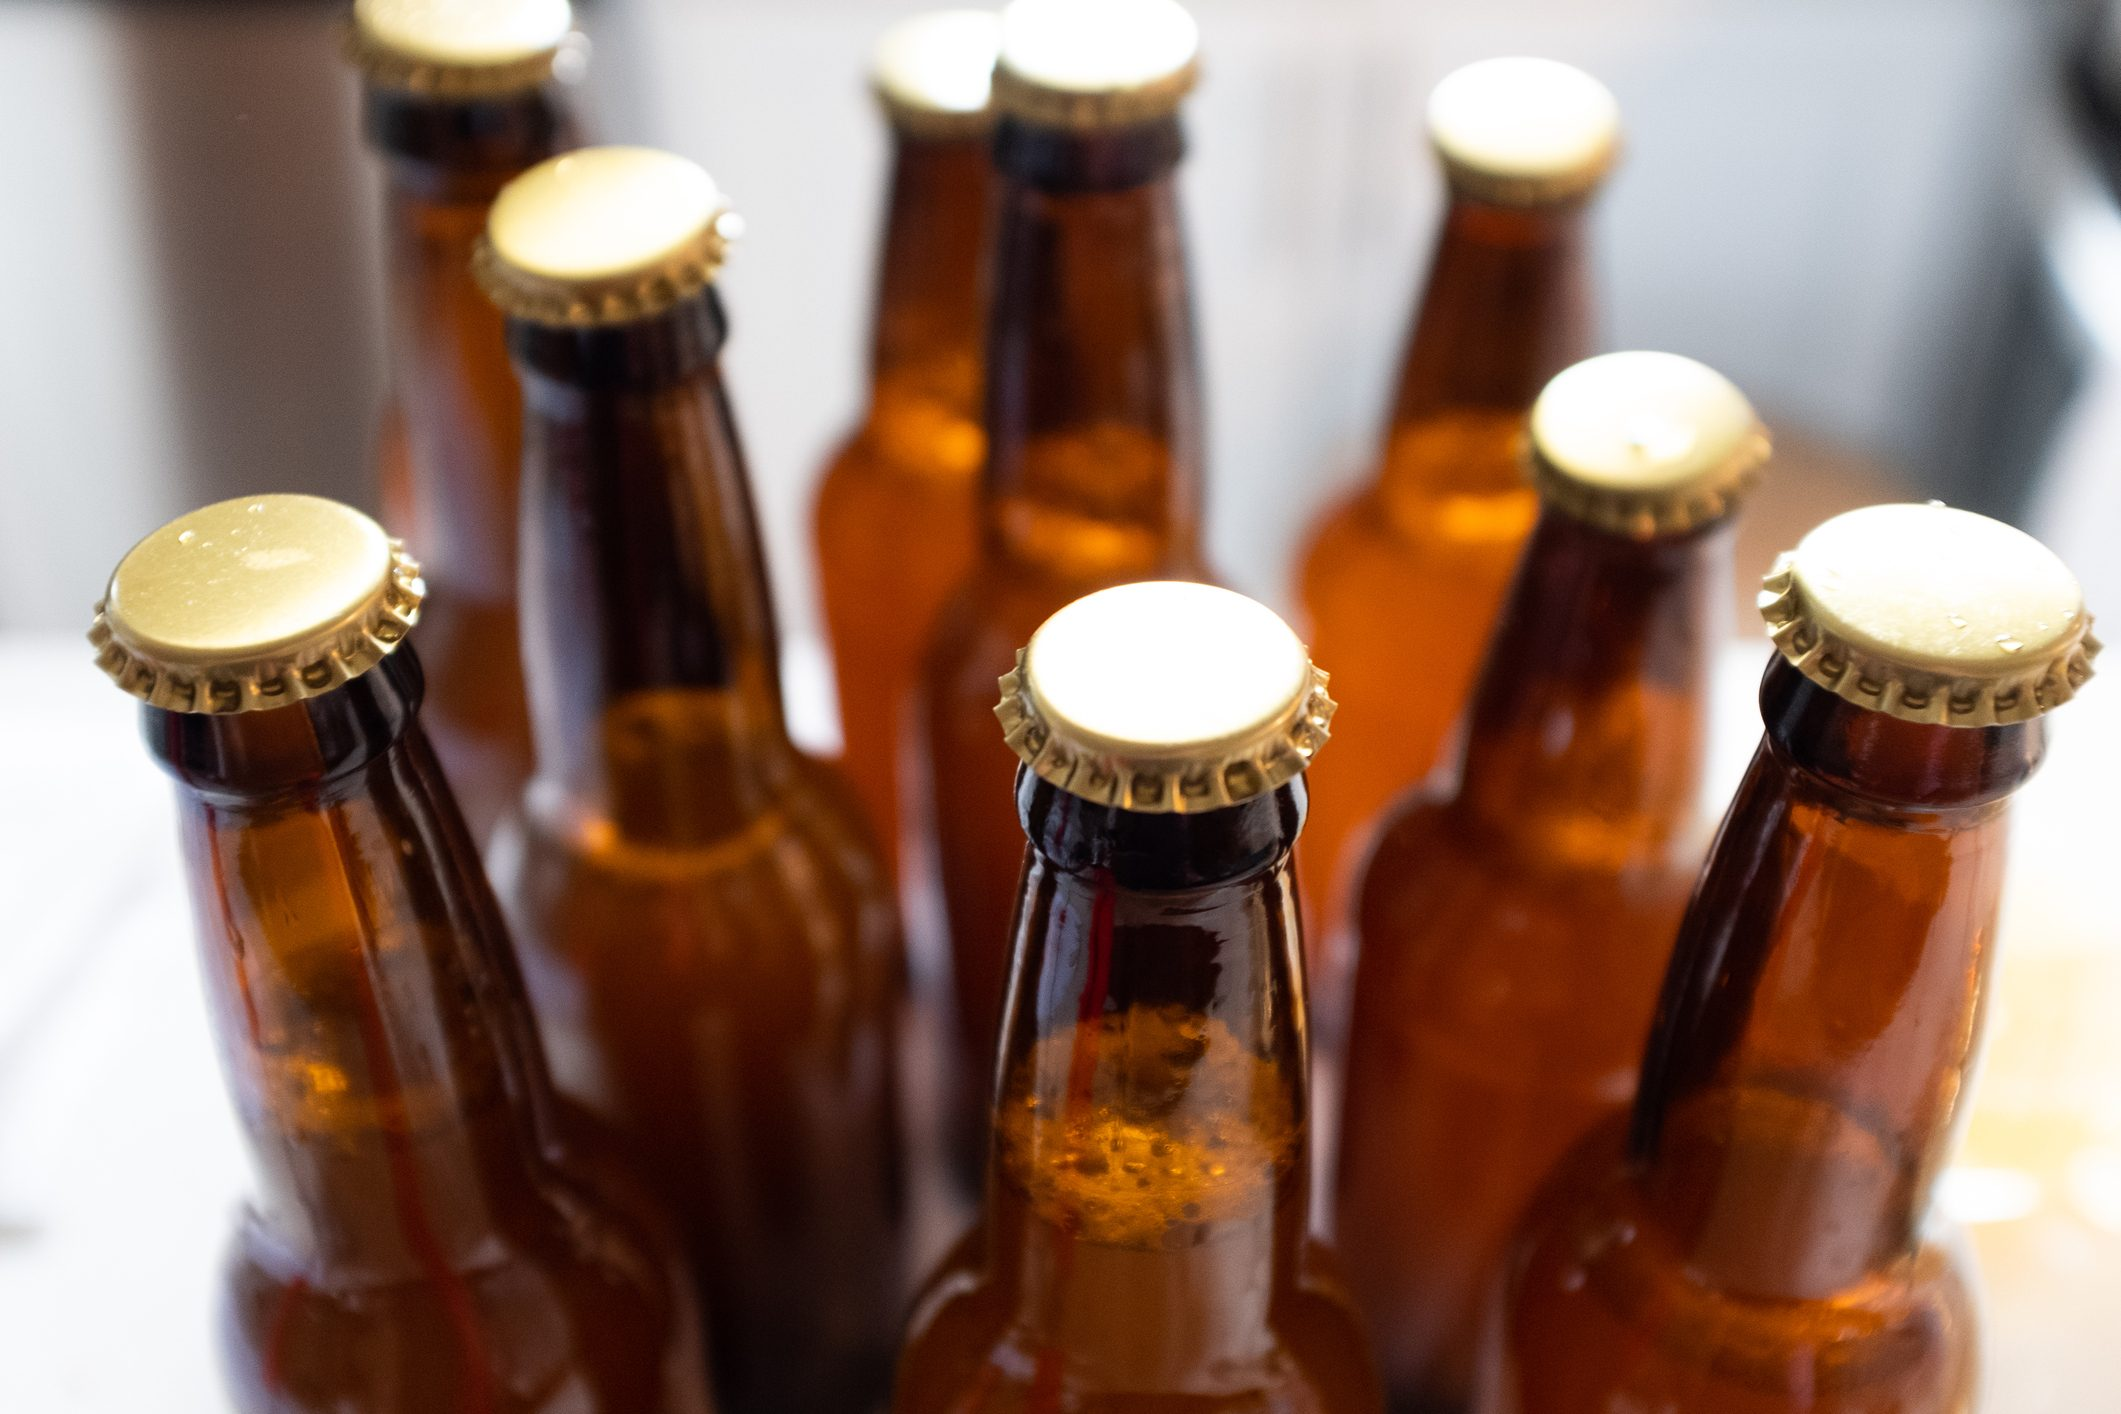 close up of beer bottles